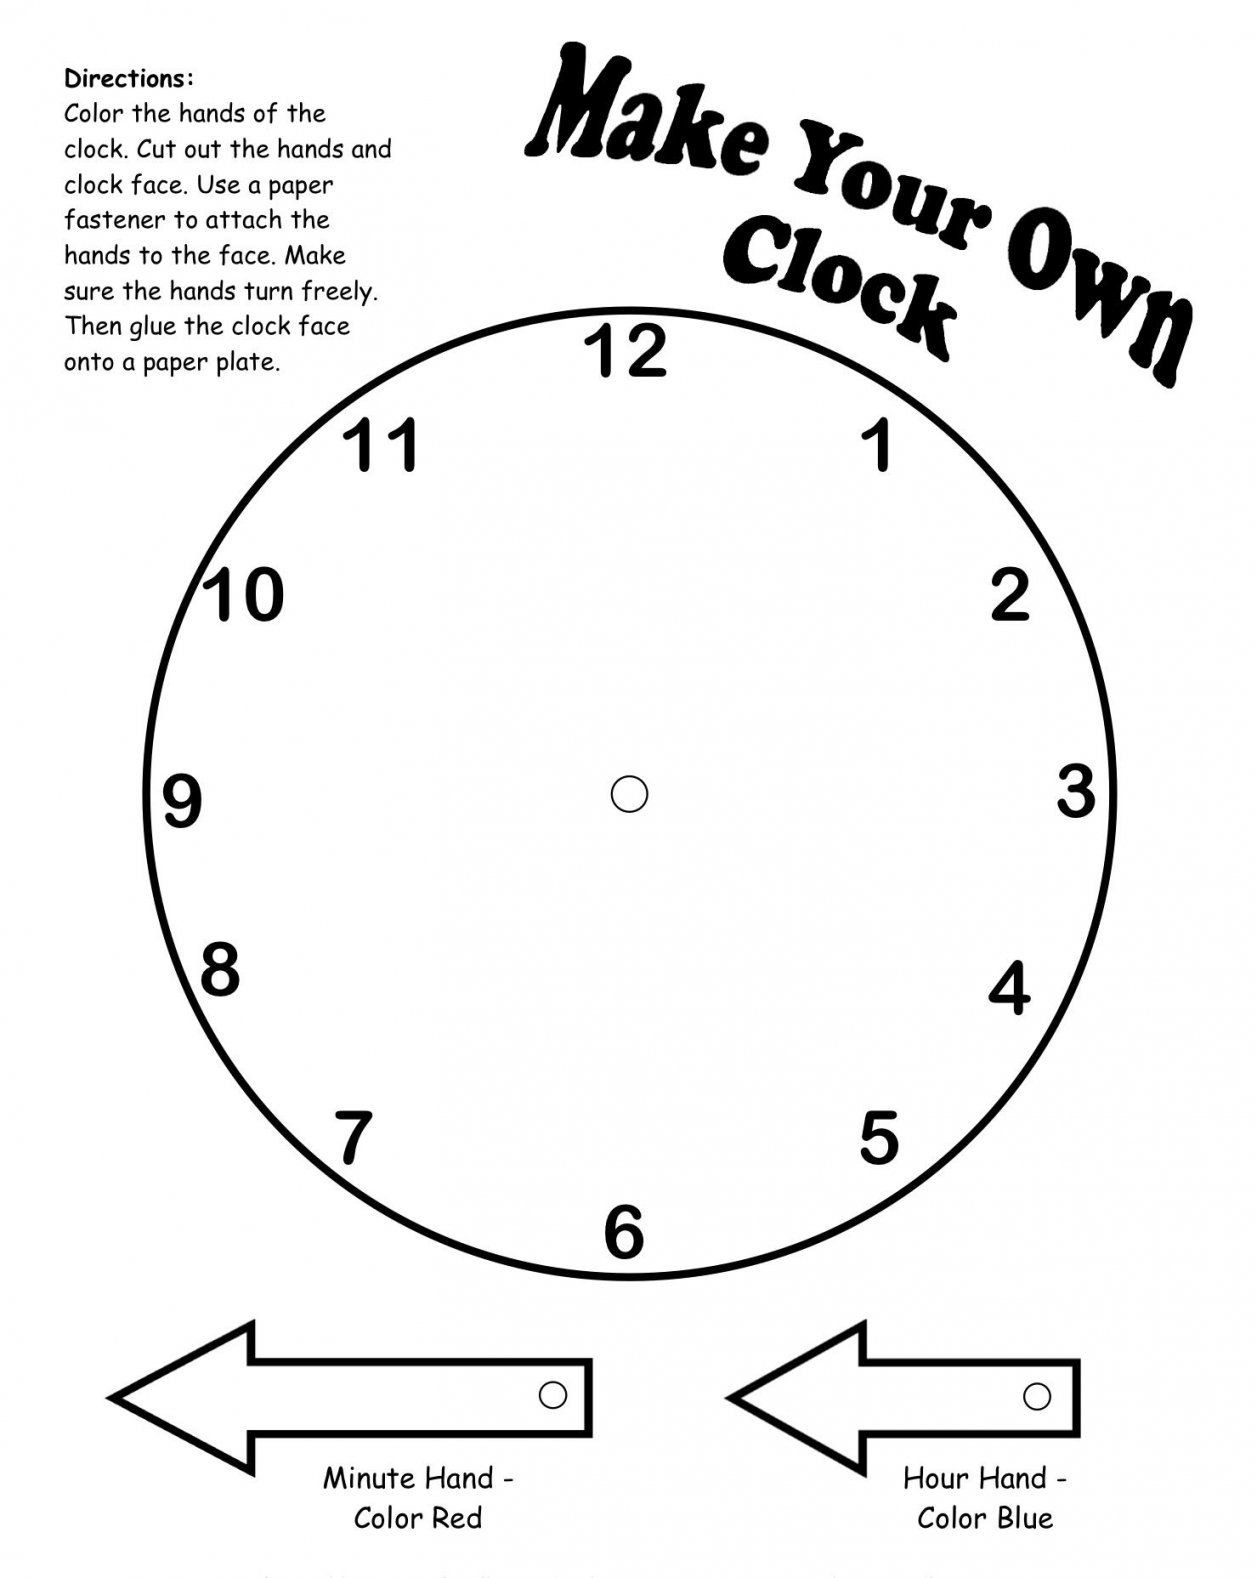 Make Your Own Clock Printable  Placement  Pinterest  Onderwijs von Make Your Own Clock Photo